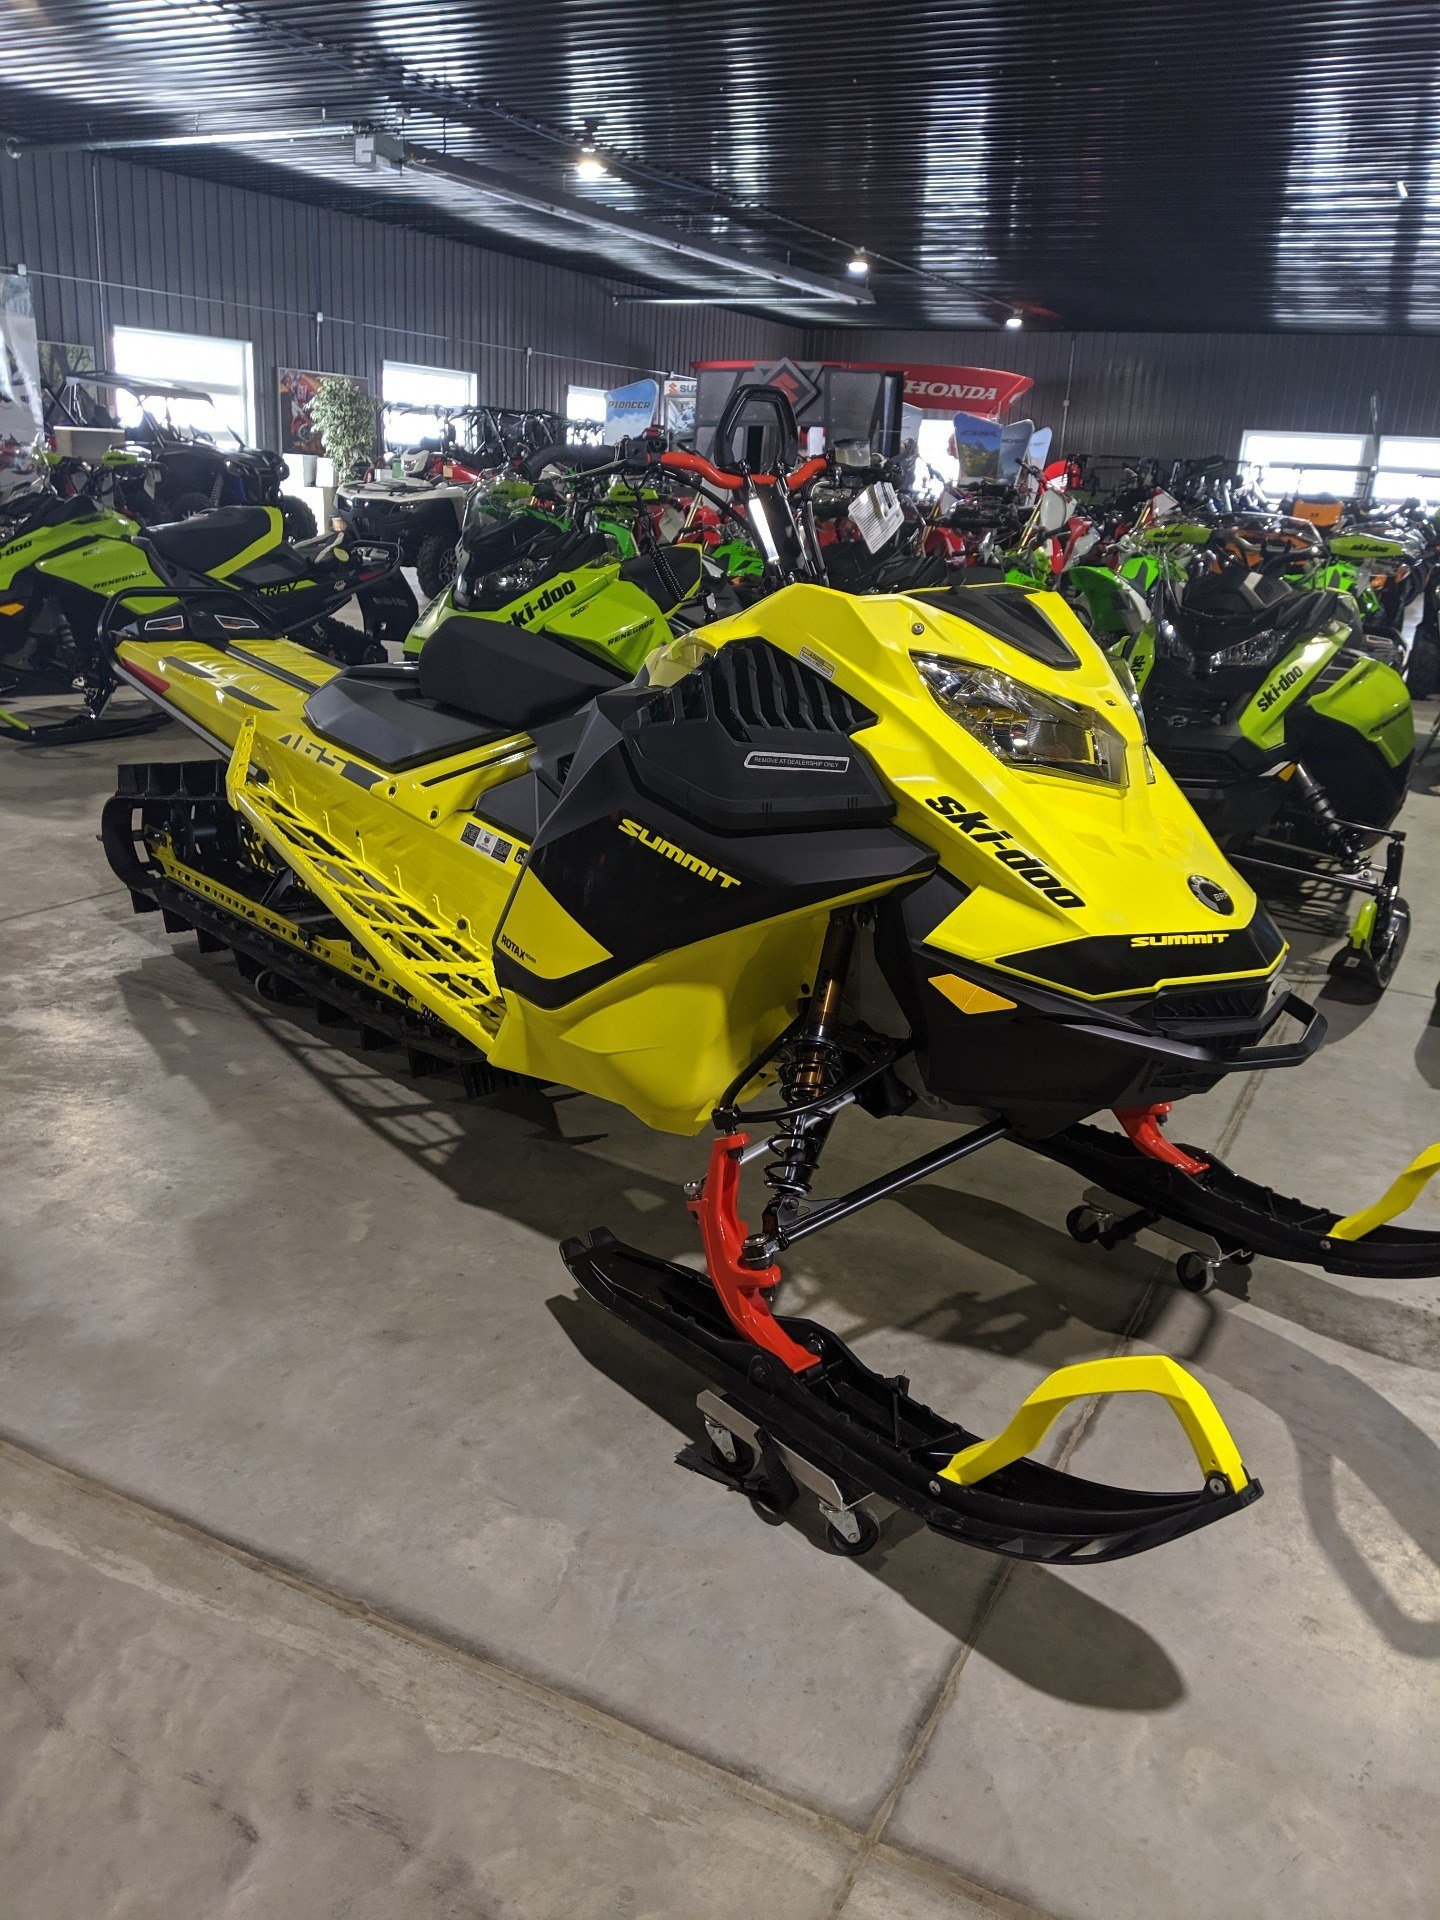 2020 Ski-Doo Summit 165 850 E-TEC Turbo SHOT in Cedar Falls, Iowa - Photo 3